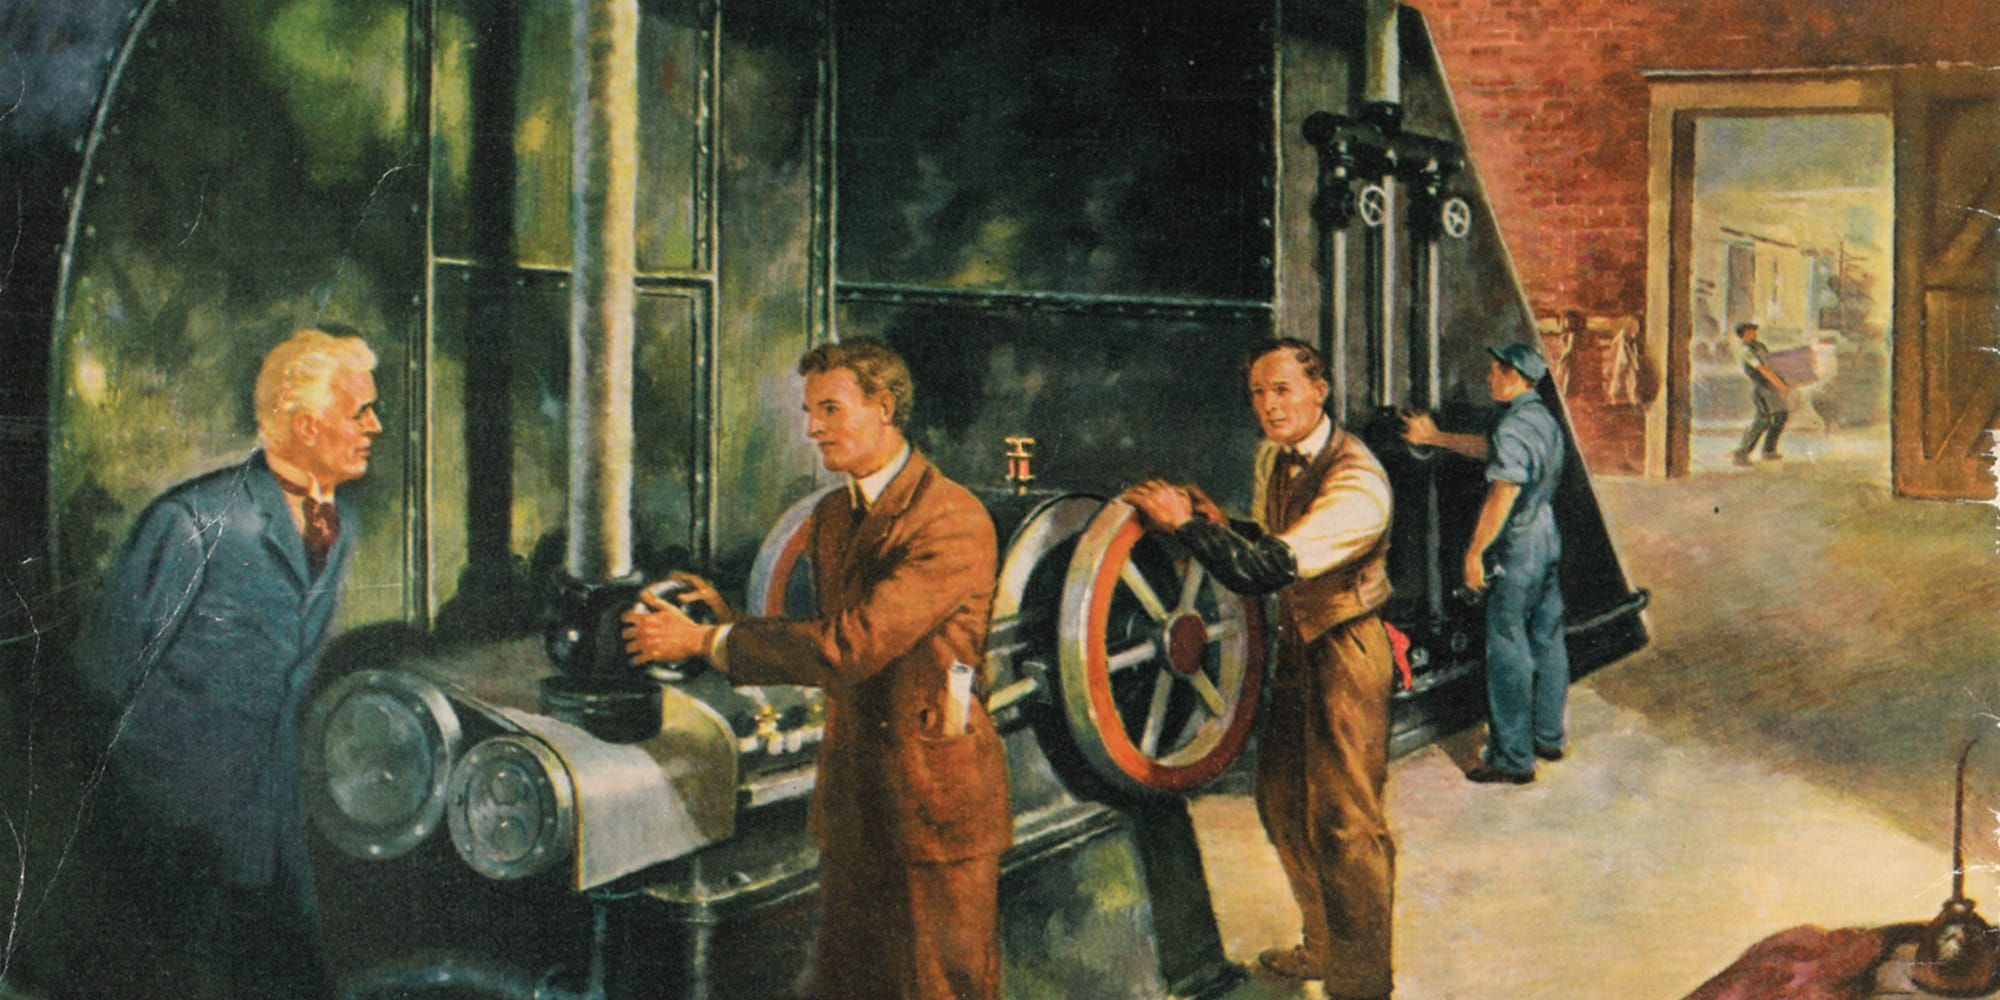 1902-sackett-wilhelm-first-modern-air-conditioning-system